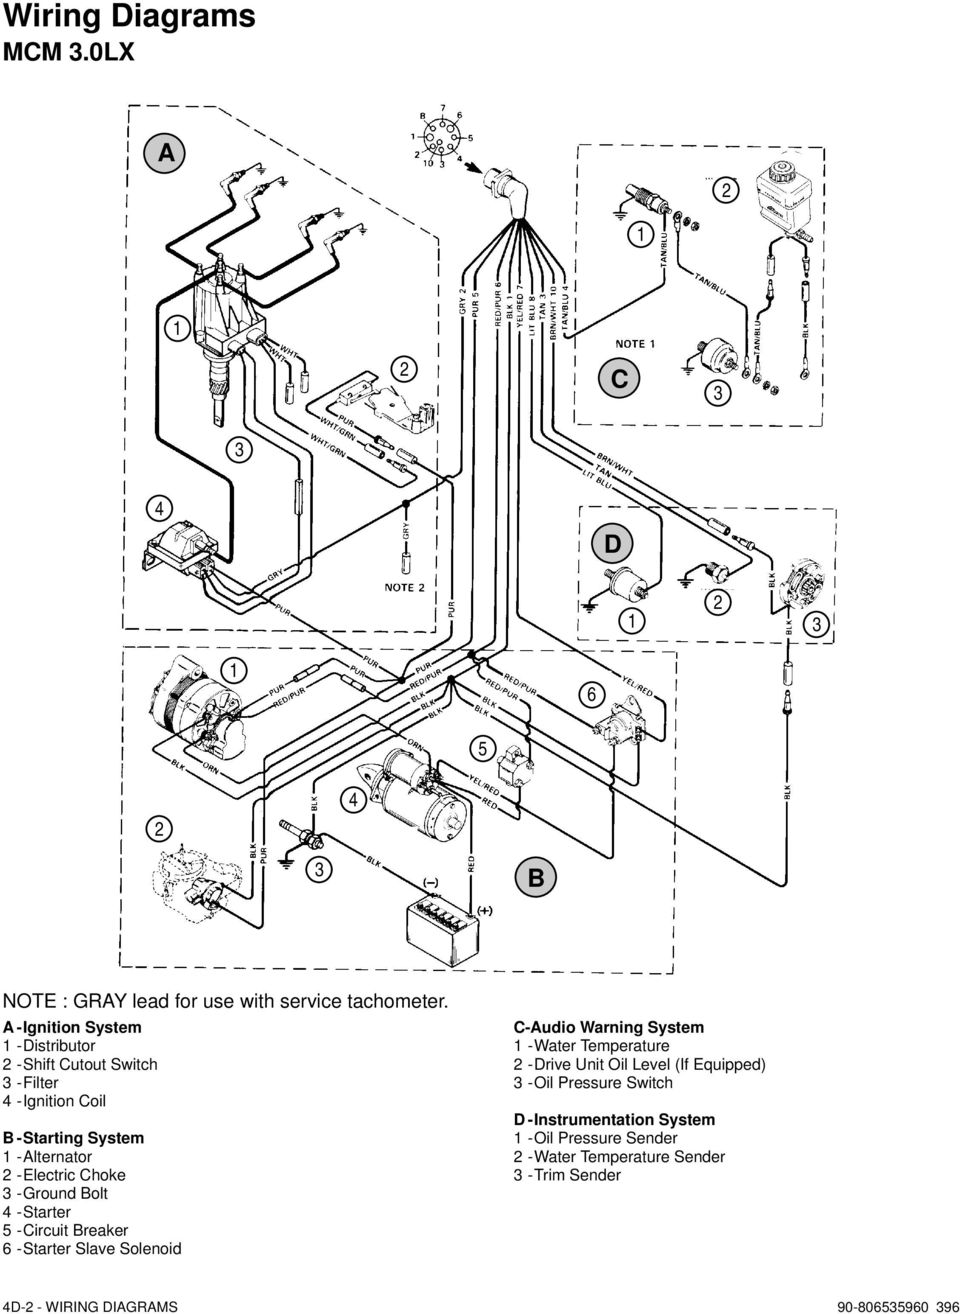 Electrical Systems Wiring Diagrams Pdf Kwik Wire Ford Alt Diagram Ground Olt Starter Ircuit Reaker Slave Solenoid Udio Warning System